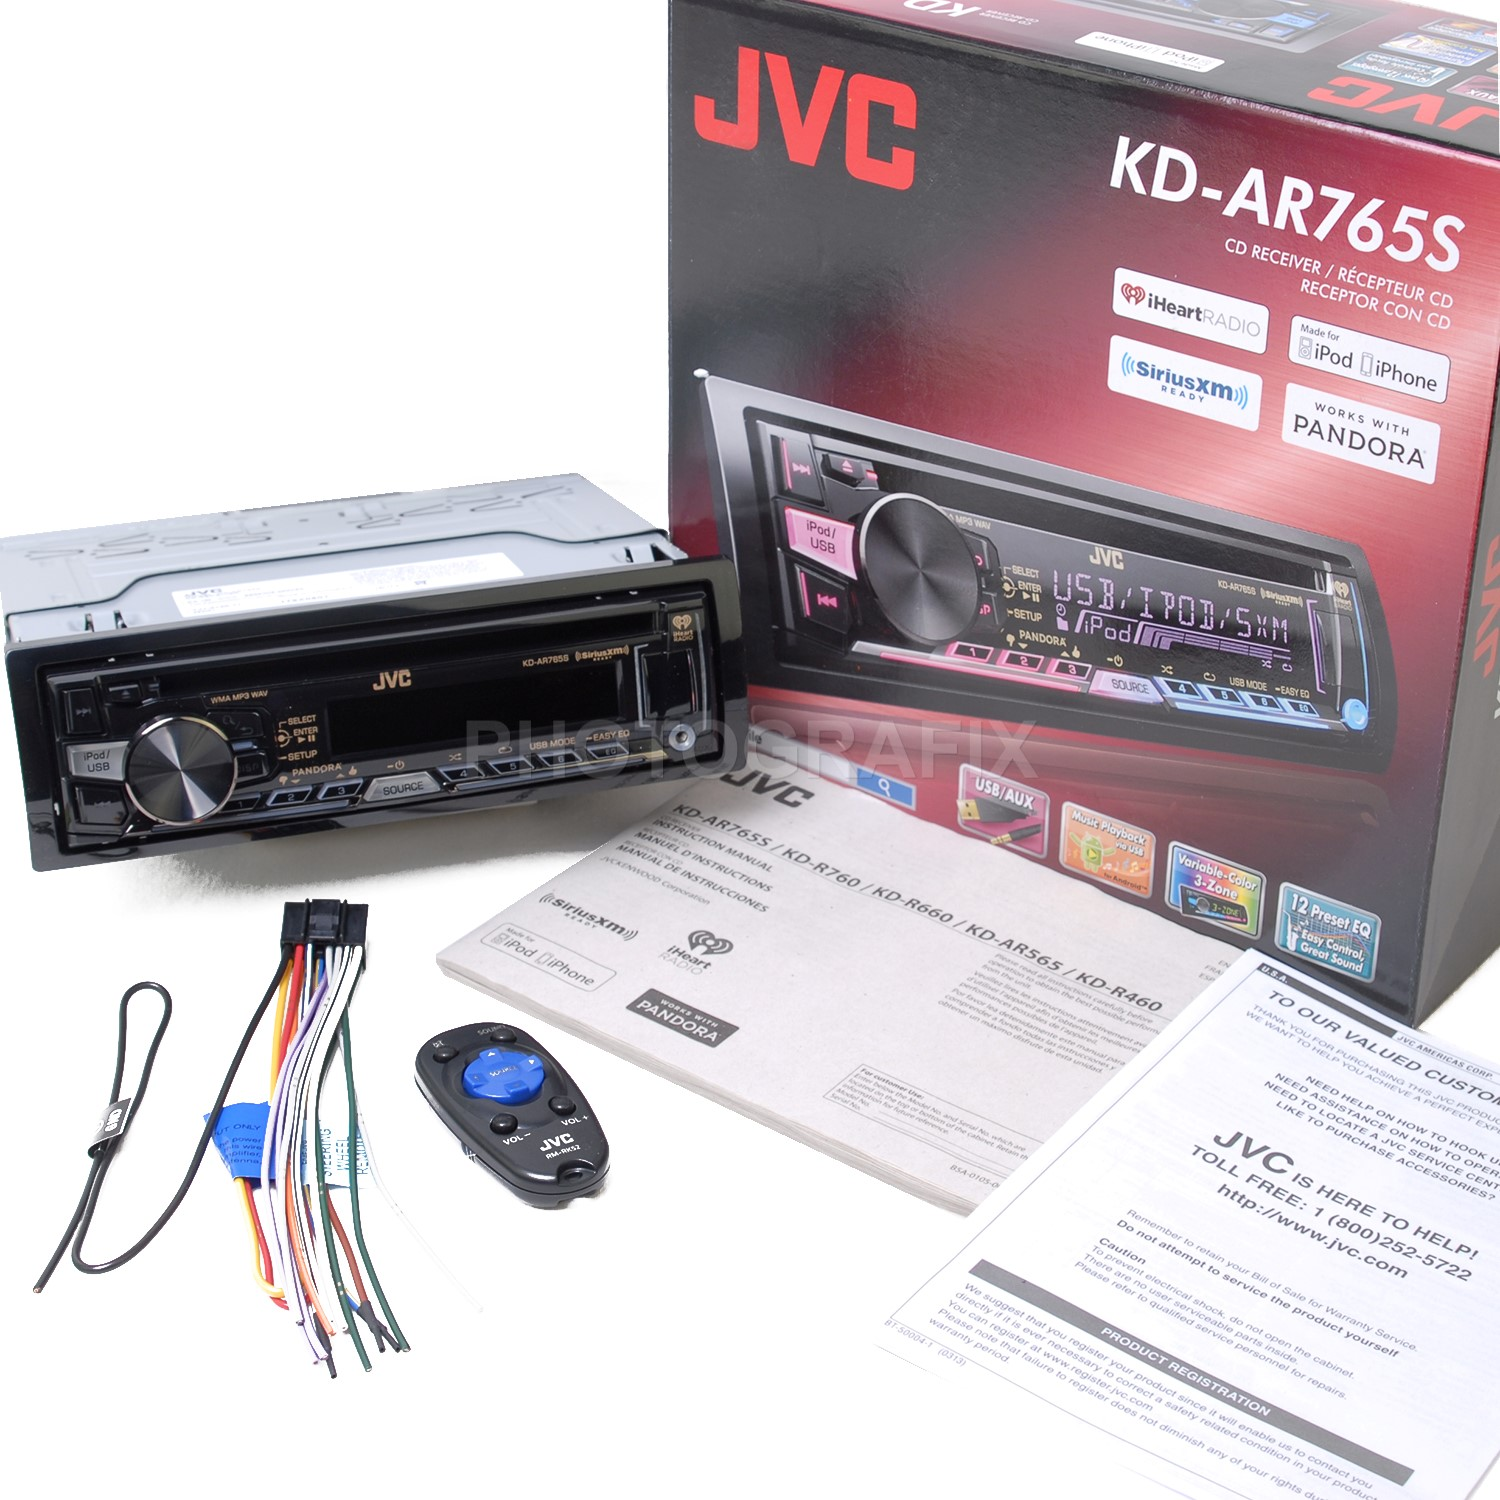 Jvc Kd R530 Wiring Diagram Jvc Kd R Wiring Diagram on jvc kd r320 wiring diagram, jvc cd player wiring-diagram, jvc r330 wiring-diagram, kds 19 jvc radio wiring diagram, jvc kd r330 wire diagram, jvc head unit wiring diagram, jvc car radio wiring s, jvc kd r200 wire diagram, jvc wiring harness diagram, jvc radio wiring harness, jvc kd r540 wiring diagram, jvc dvd car stereo wiring,